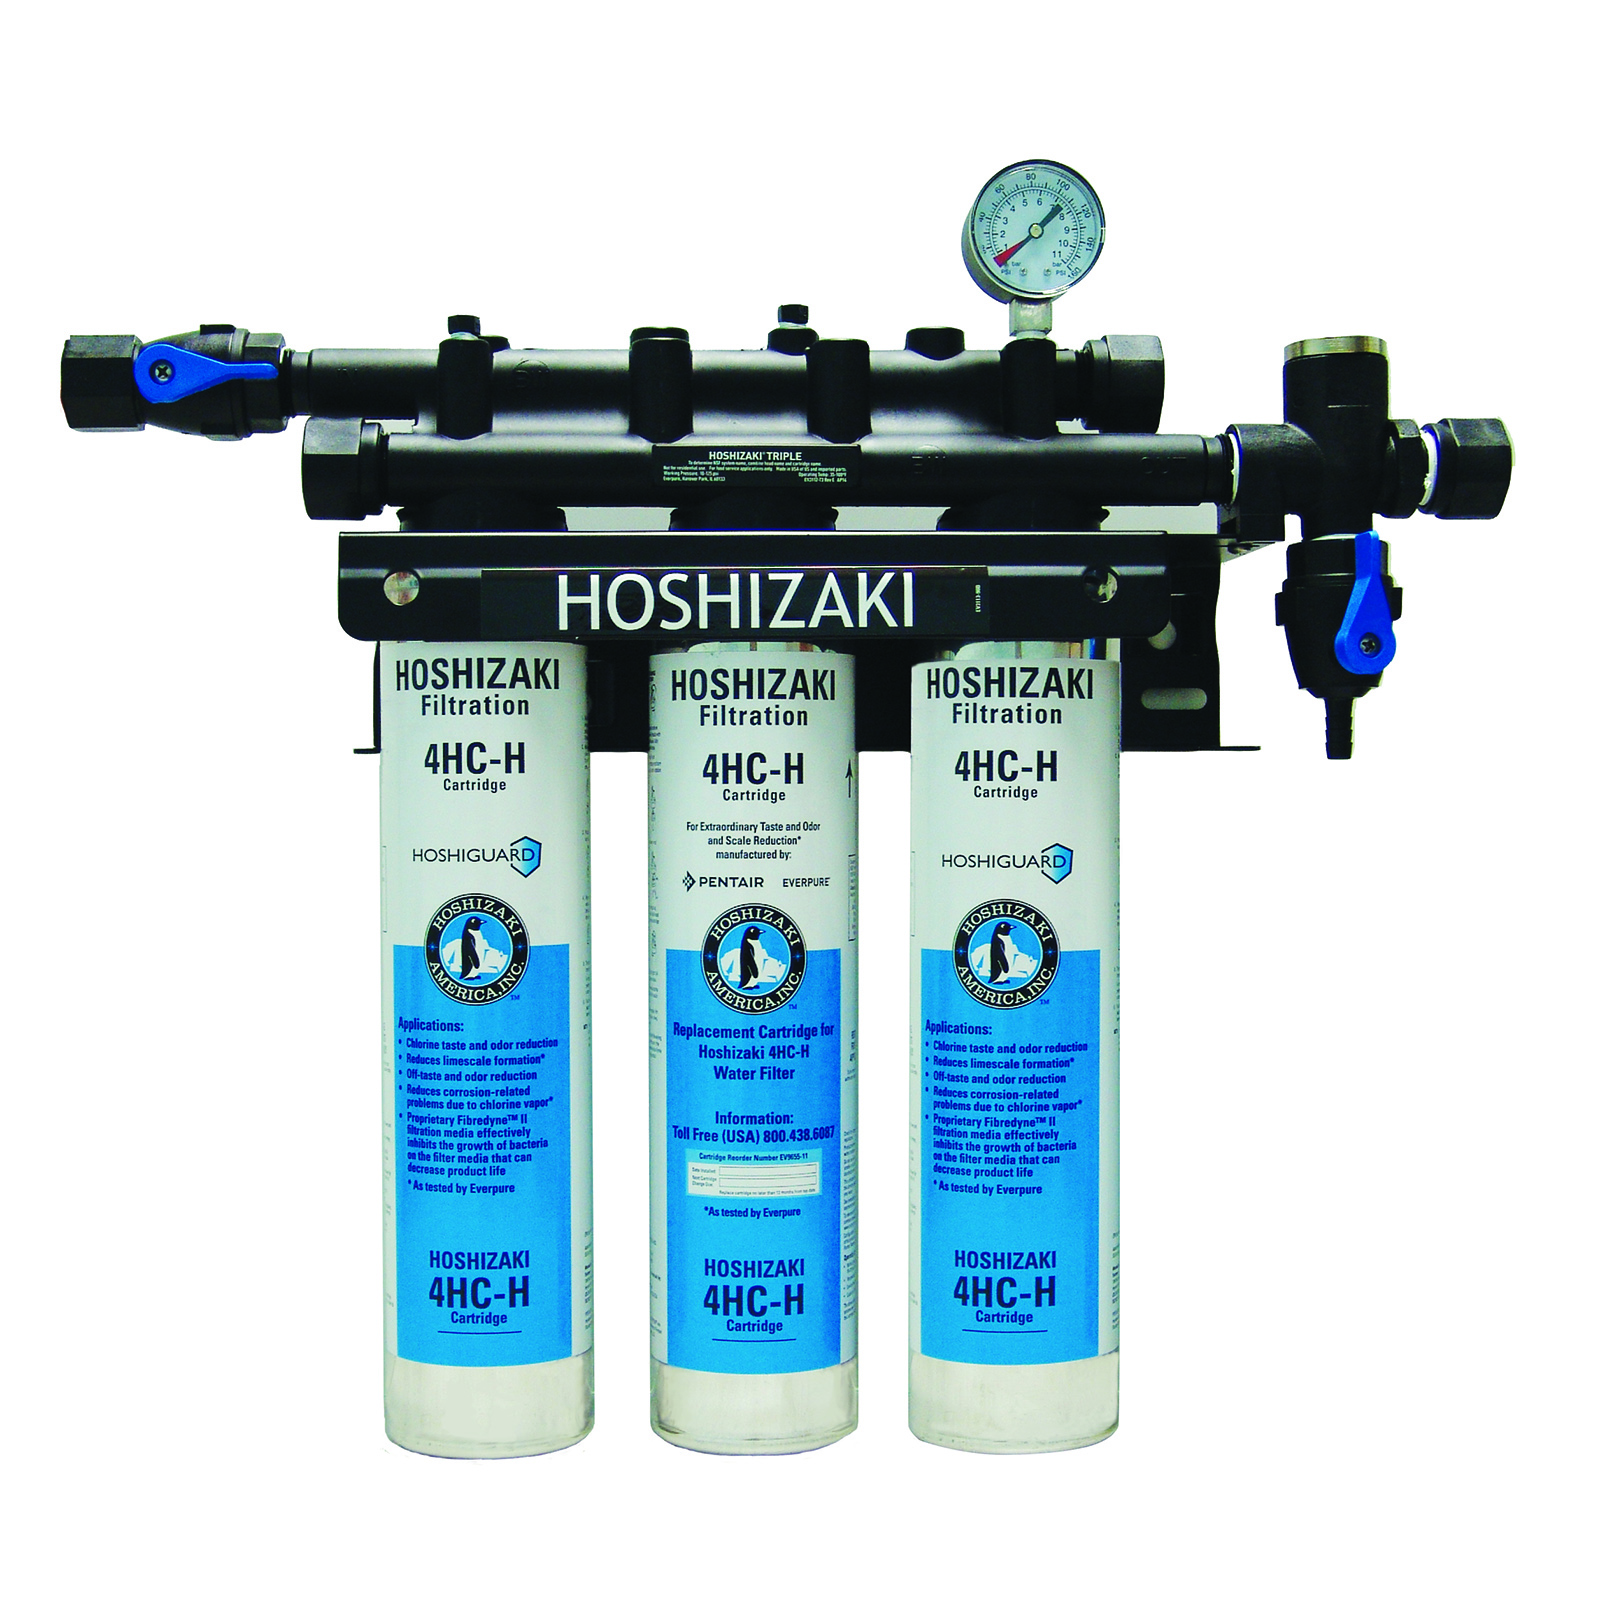 Hoshizaki H9655-06 water filtration system, cartridge